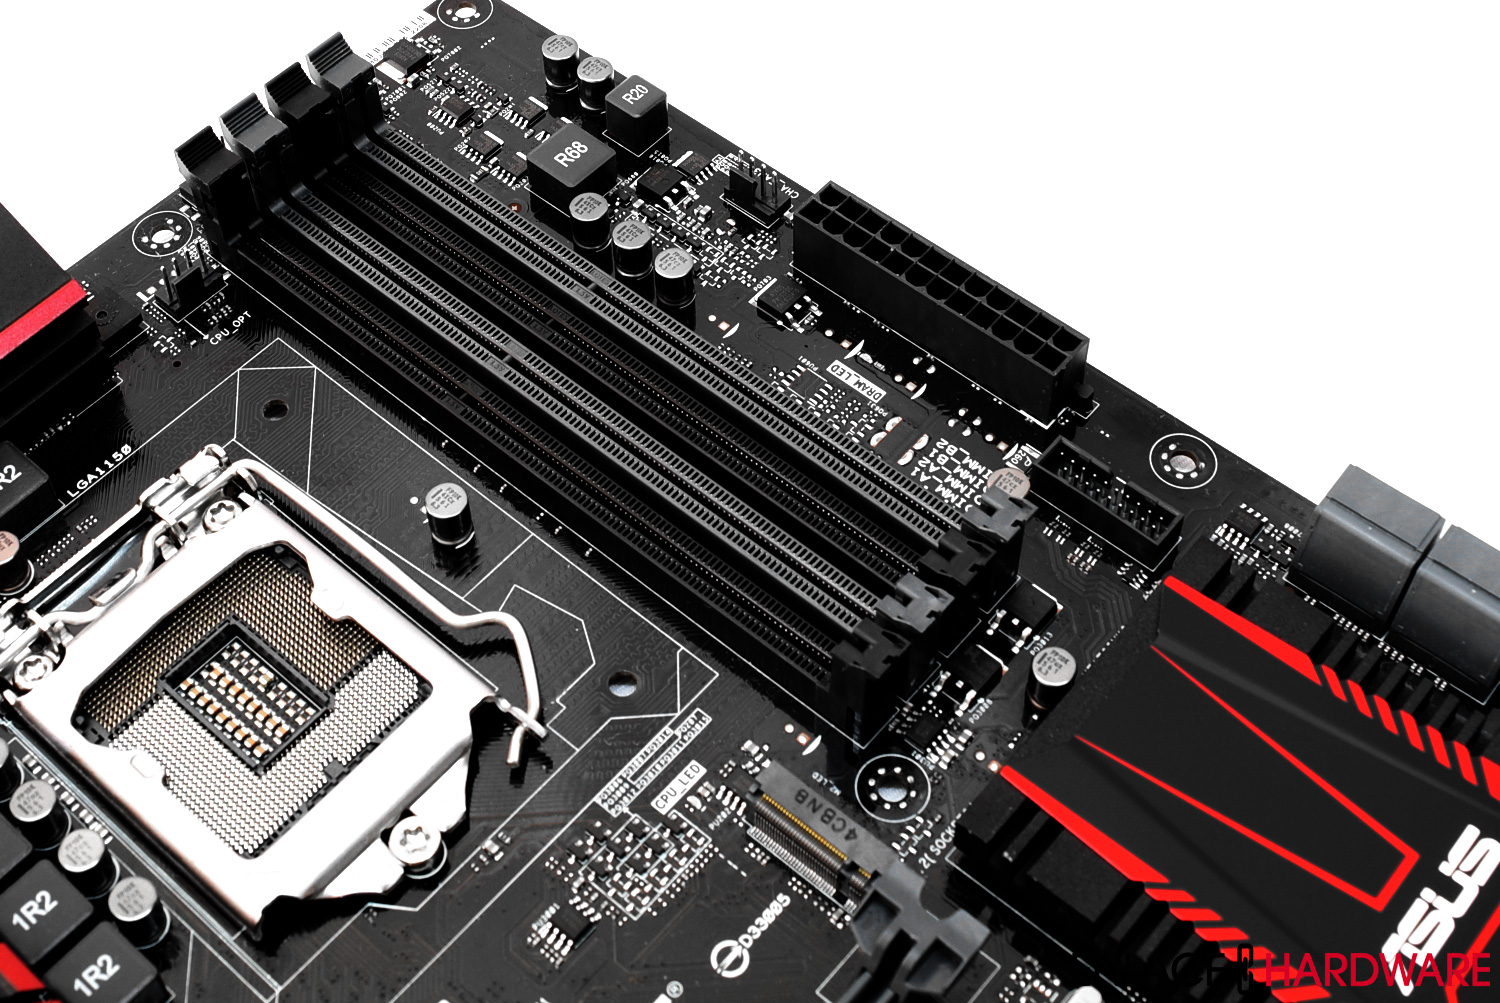 ASUS-H97-Pro-Gamer-Review-6